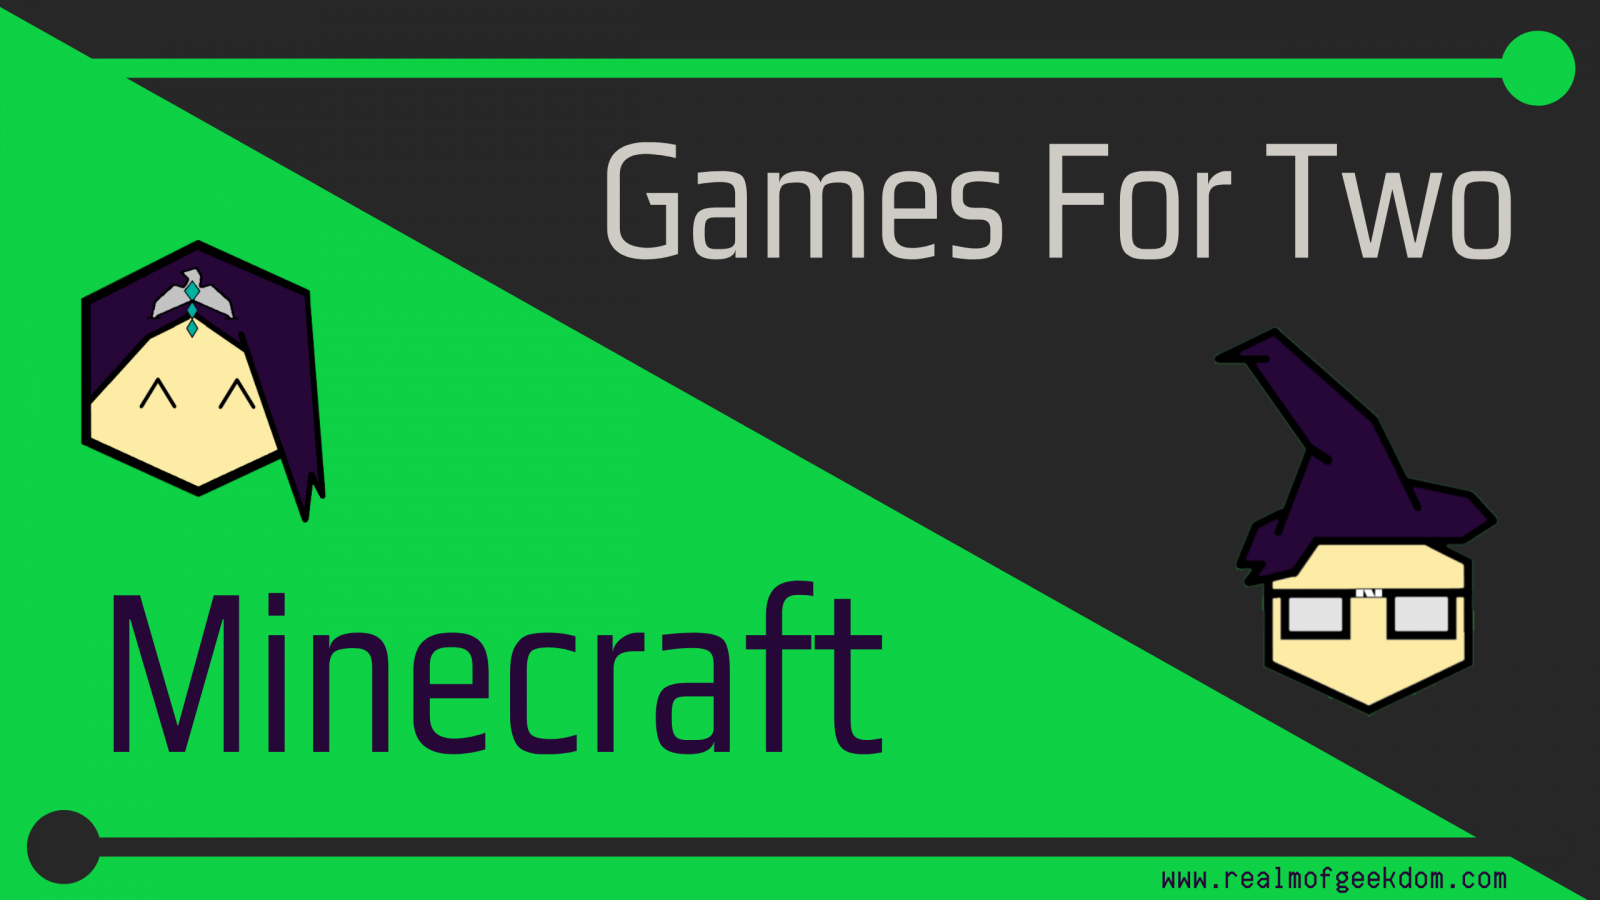 Games for Two Minecraft Title